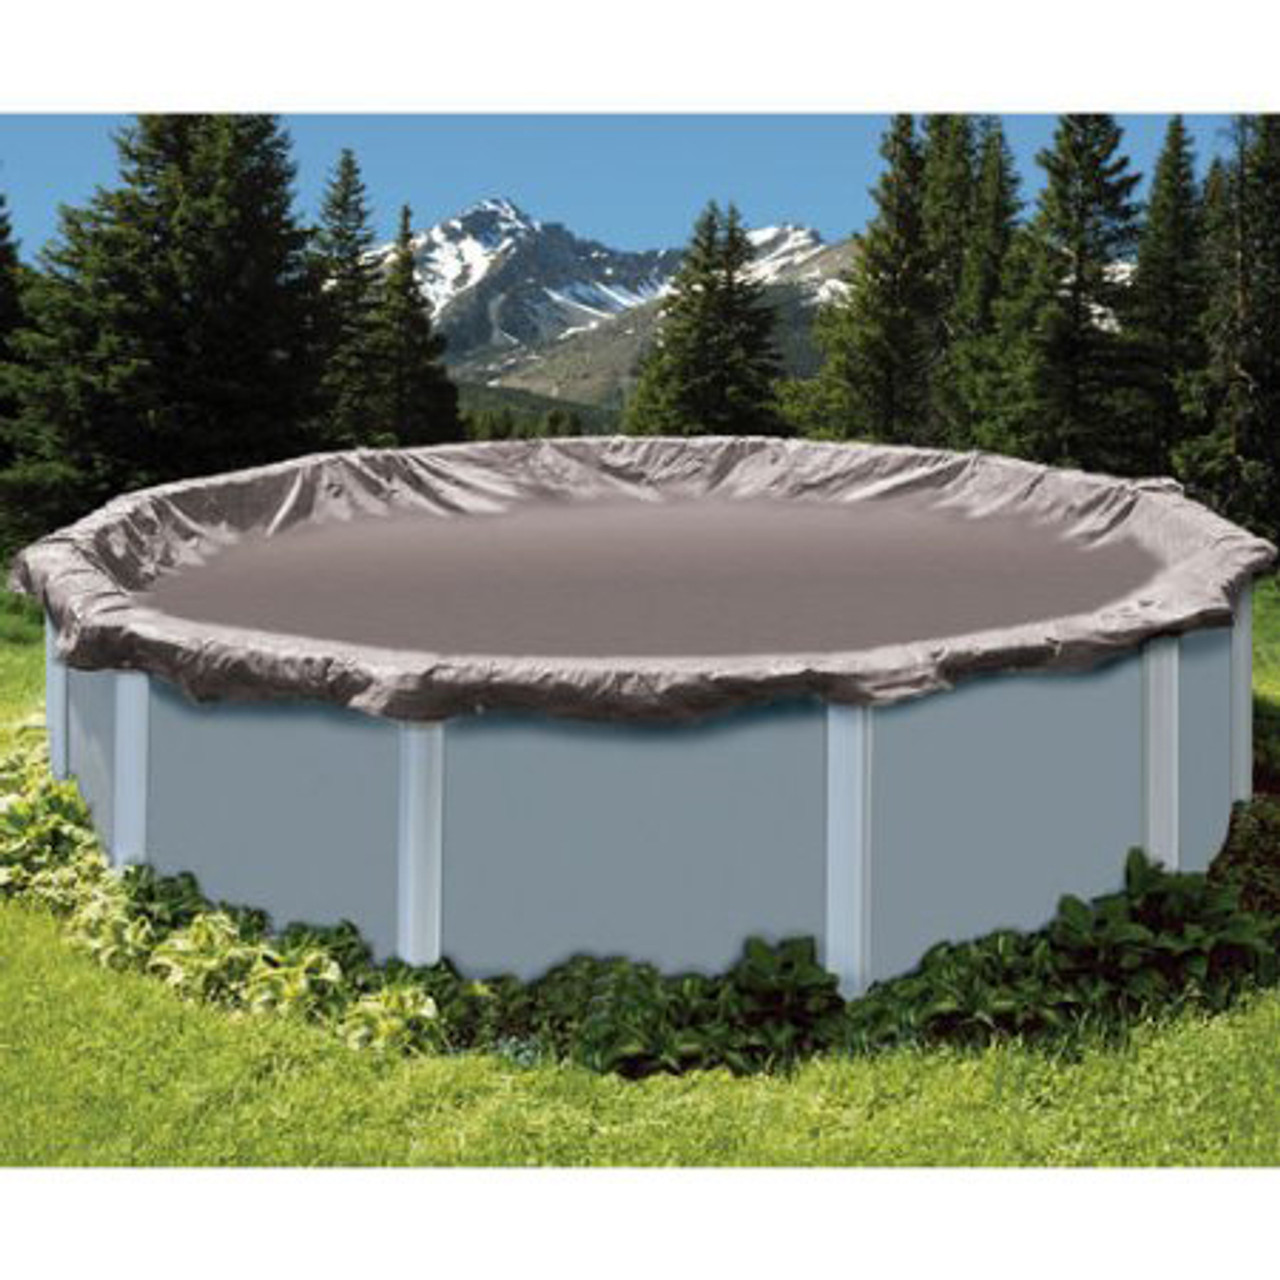 SWIMLINE SUPER DELUXE 12\' Diameter Winter Above Ground Swimming Pool Cover  15 Year Limited Warranty SD12RD